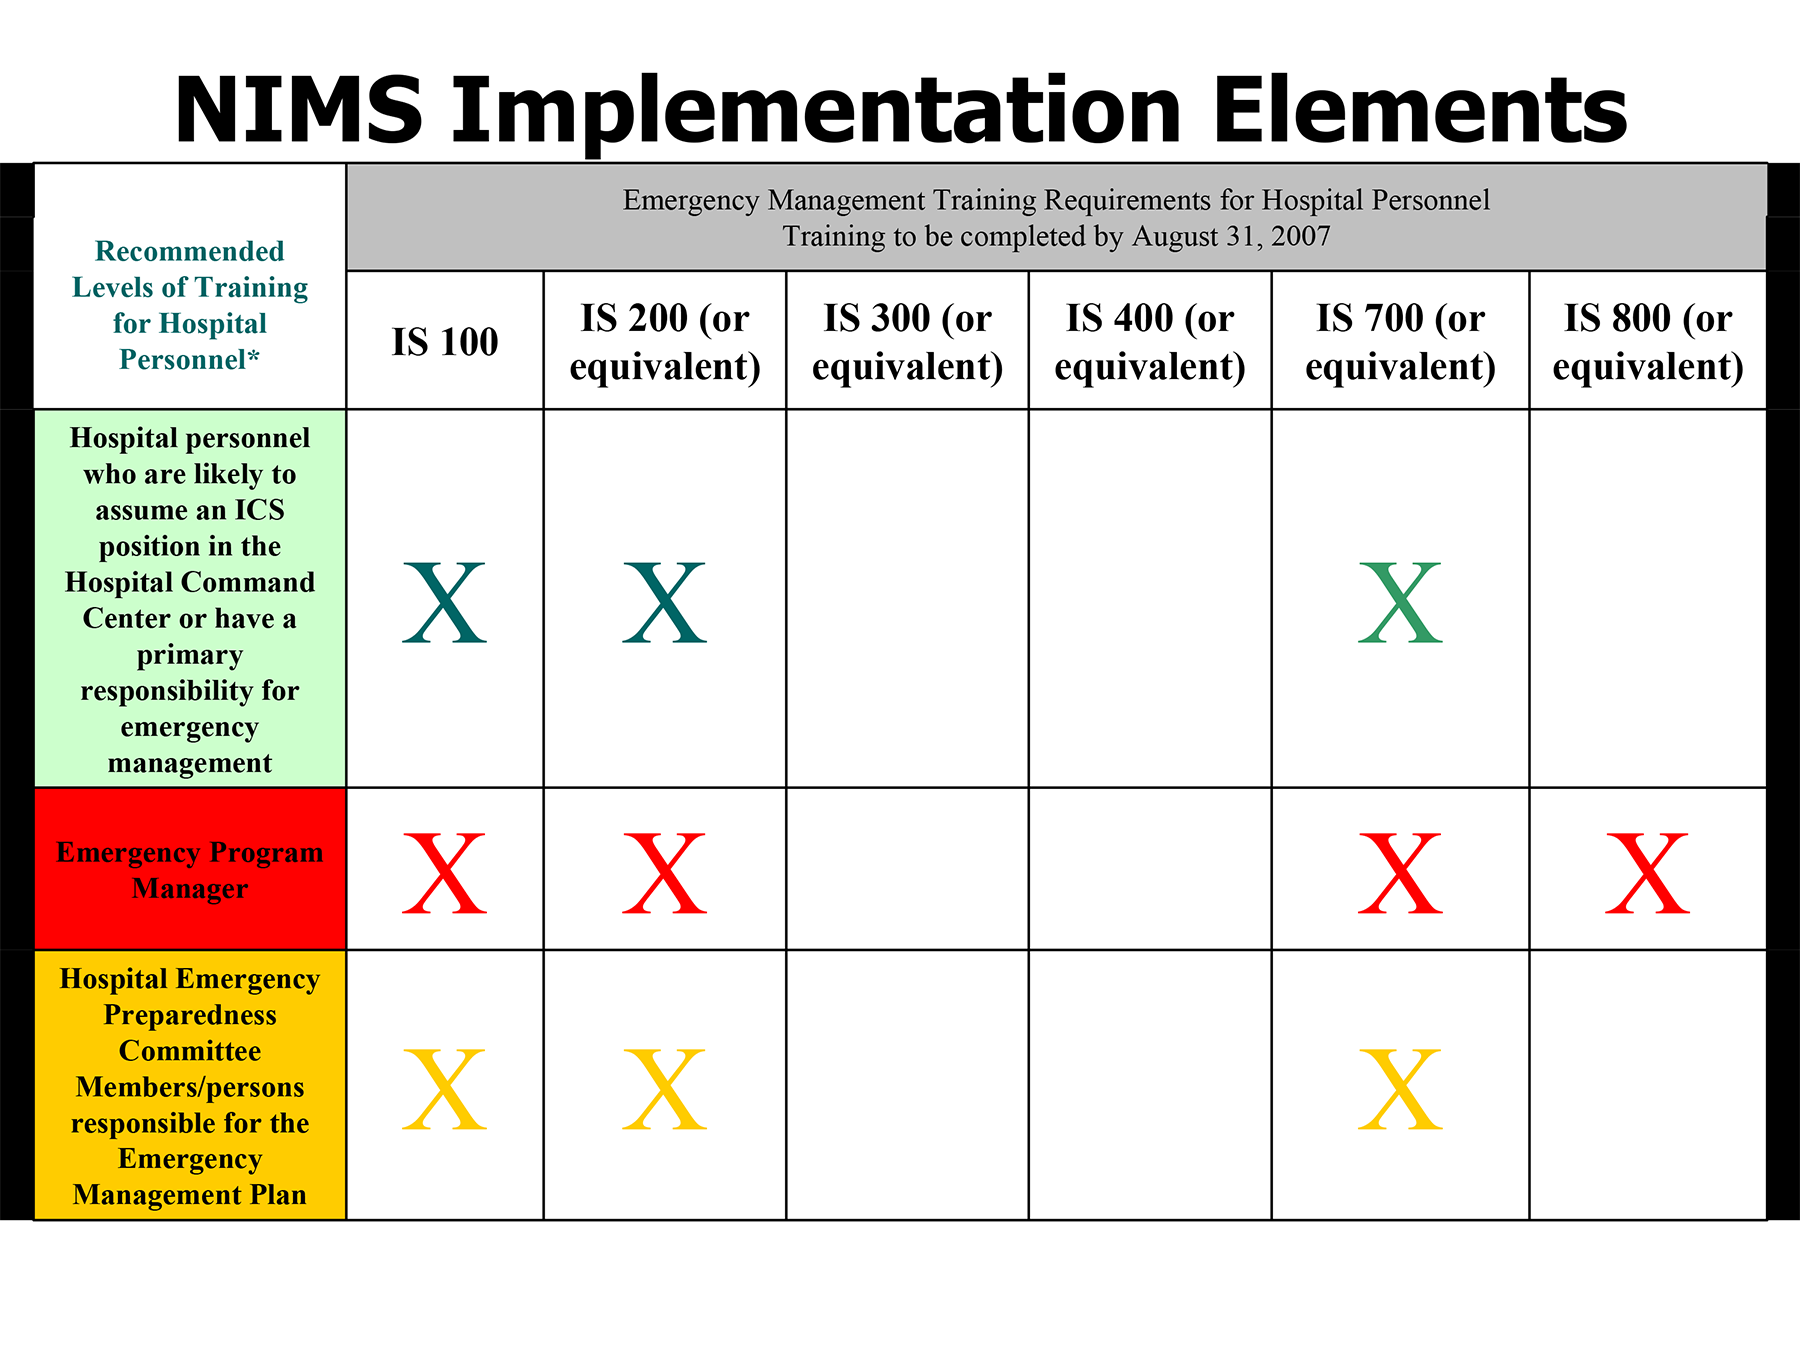 NIMS Implementation Elements